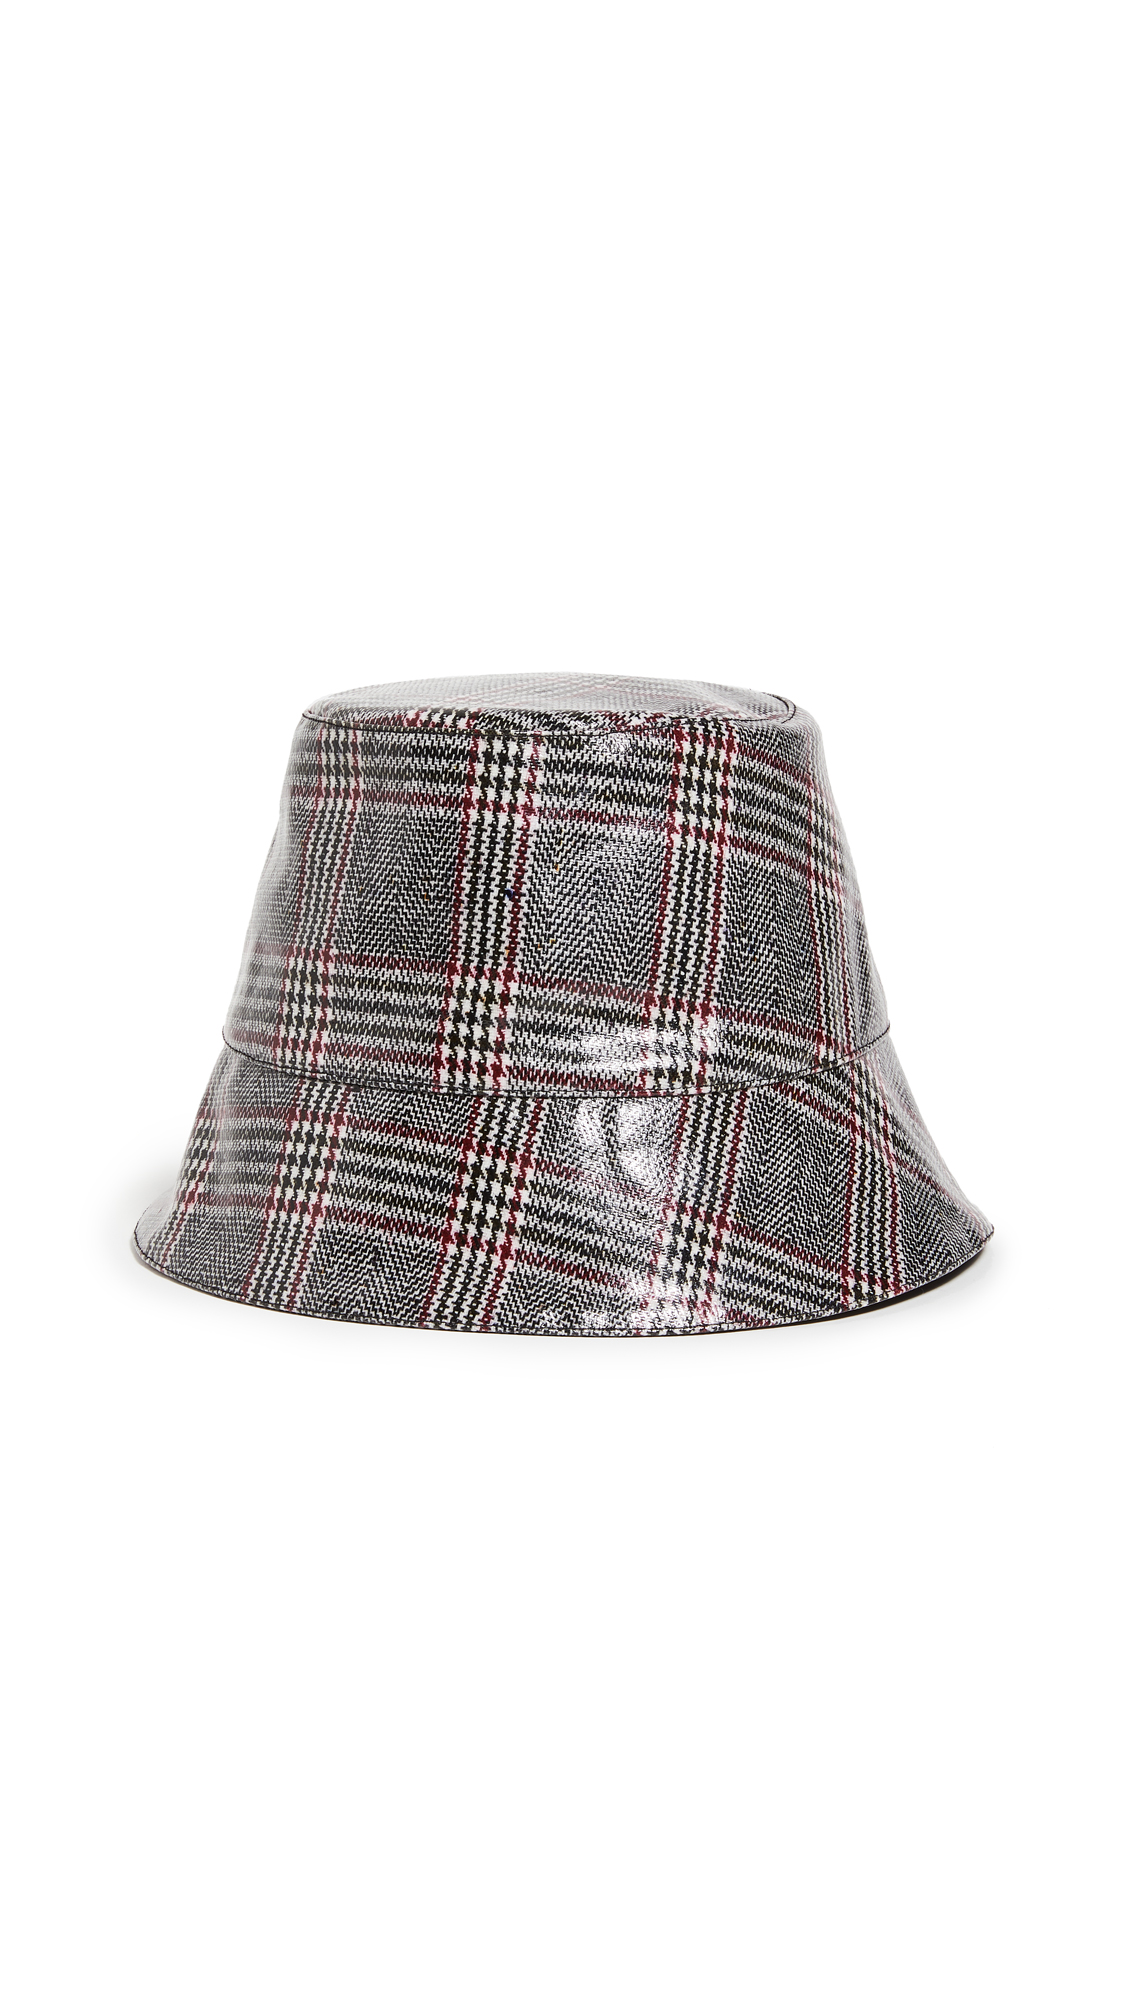 Eugenia Kim Charlie Bucket Hat